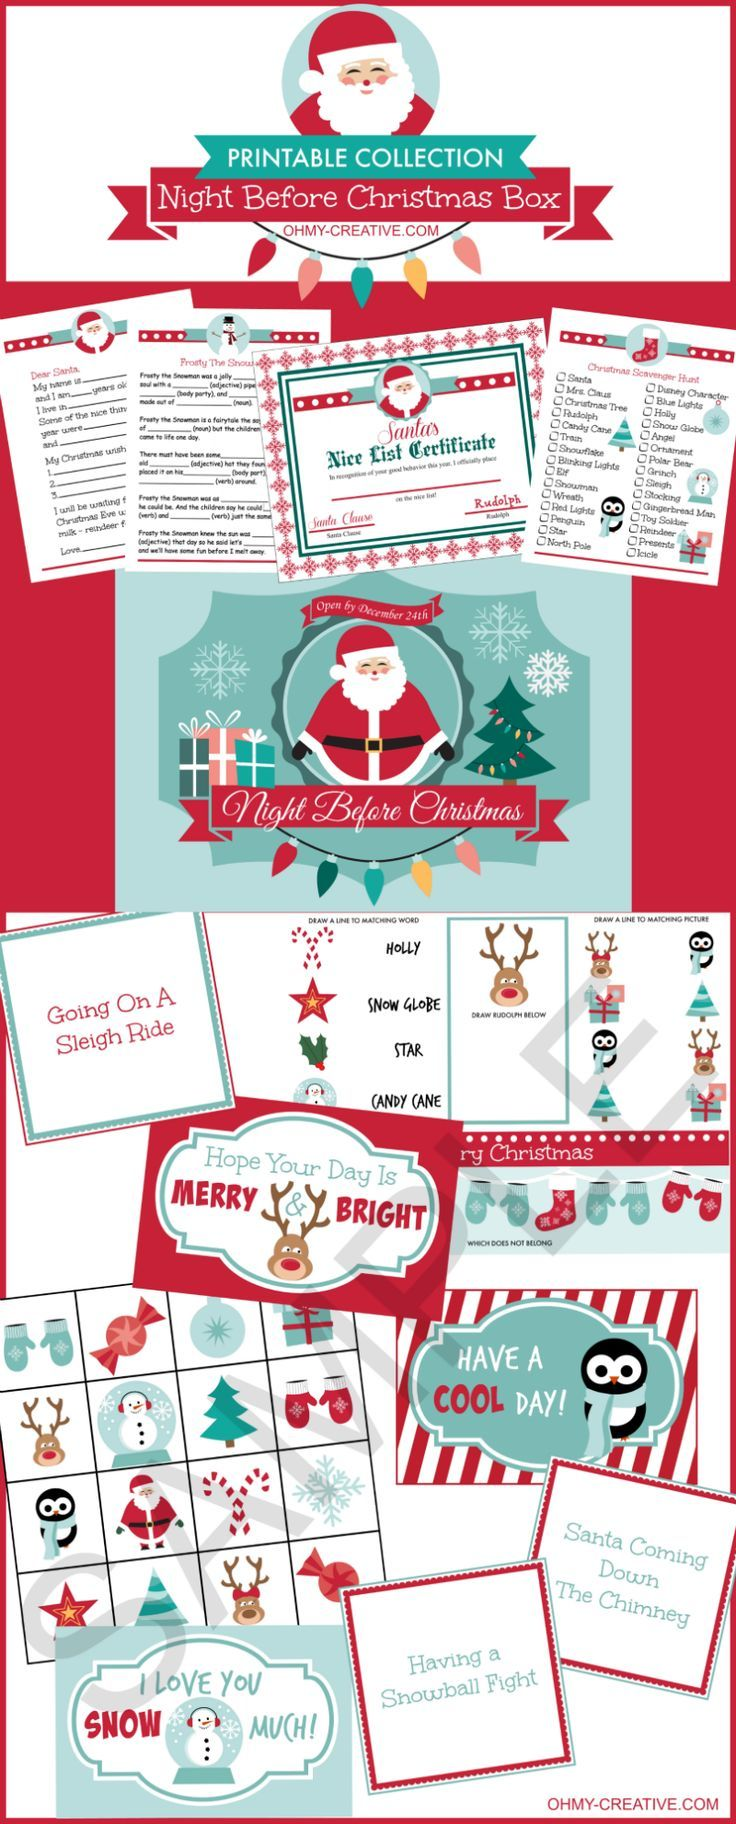 "From toddlers to teens start a new family tradition on Christmas Eve with this Night Before Christmas Box Printable Collection! Includes 18 Christmas Themed activity sheets, lunch box notes, games, Santa letter, ""Nice List"" certificate and an adorable printable label for the Christmas Eve box! Fun for all ages!"